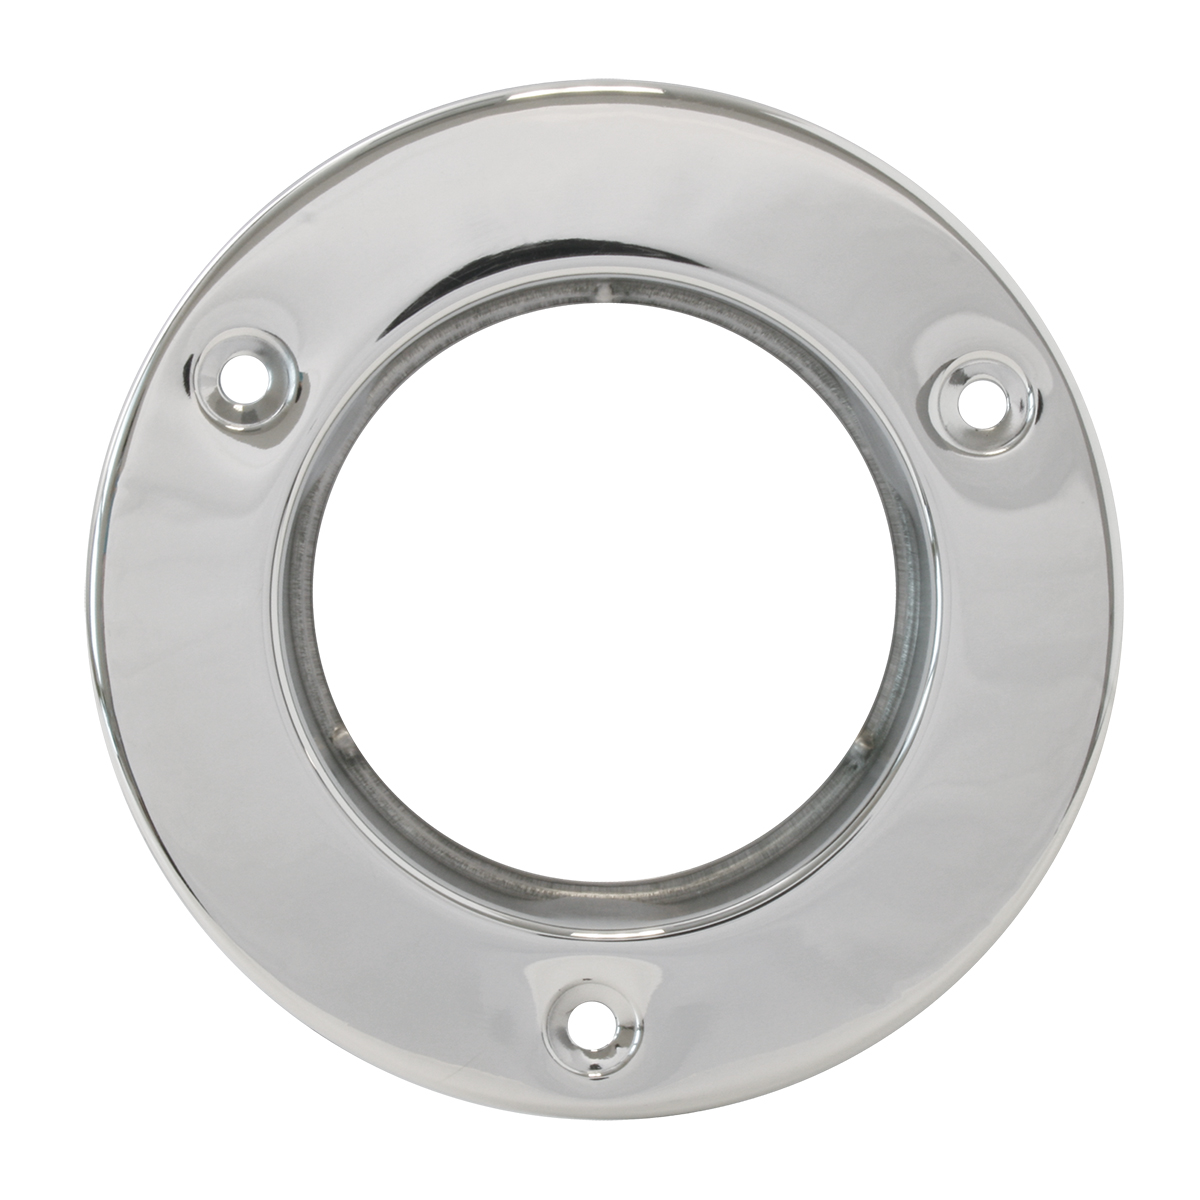 "87148 Stainless Steel Flange Mount Bezel for 2-1/2"" Round Light"